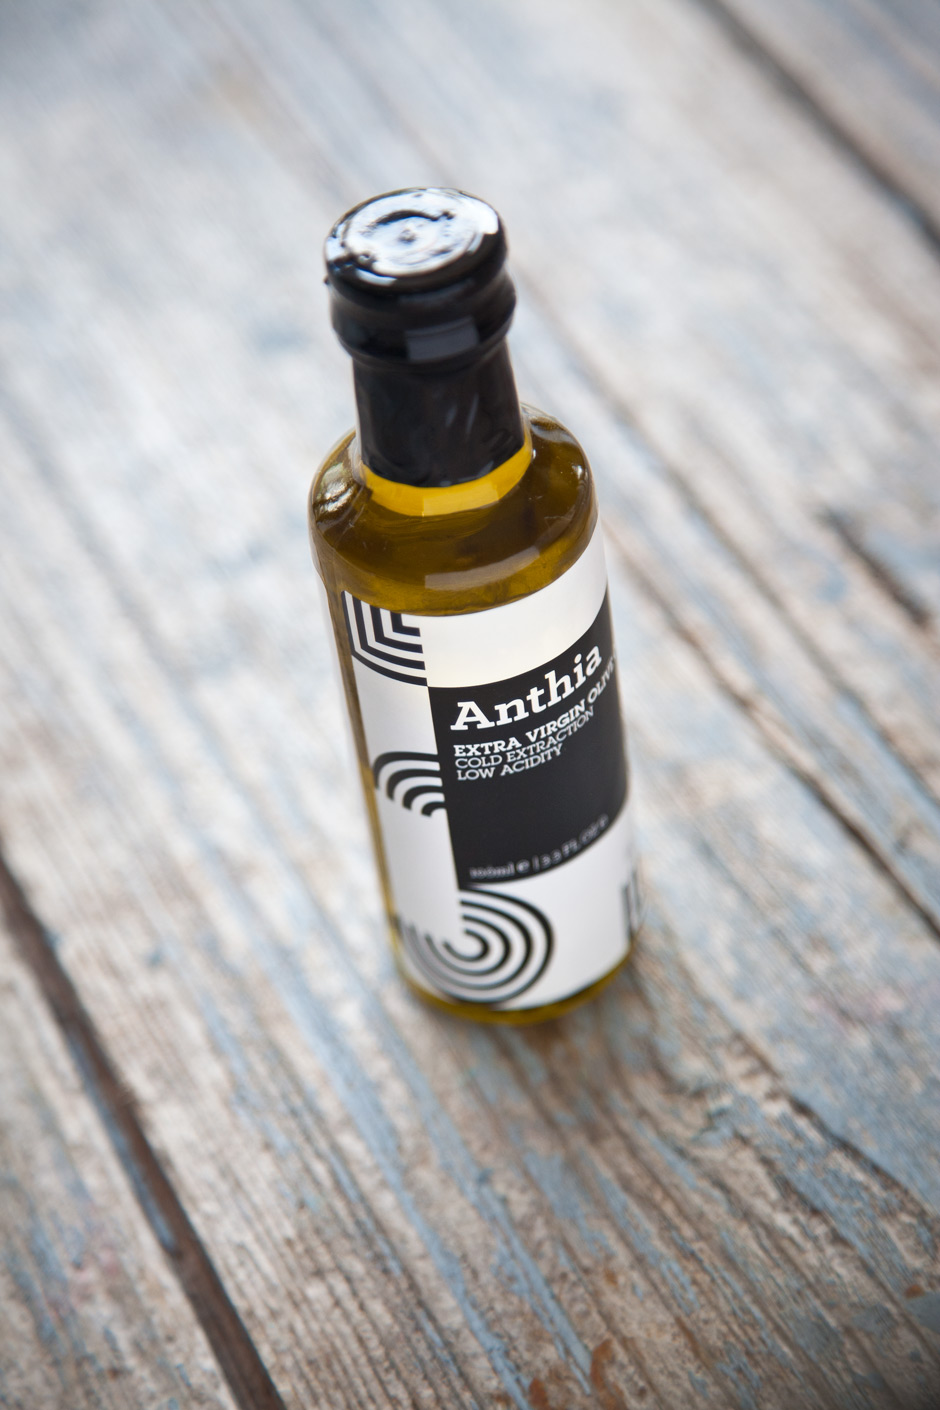 Anthia Extra Virgin Olive oil 100ml by the @comebackstudio